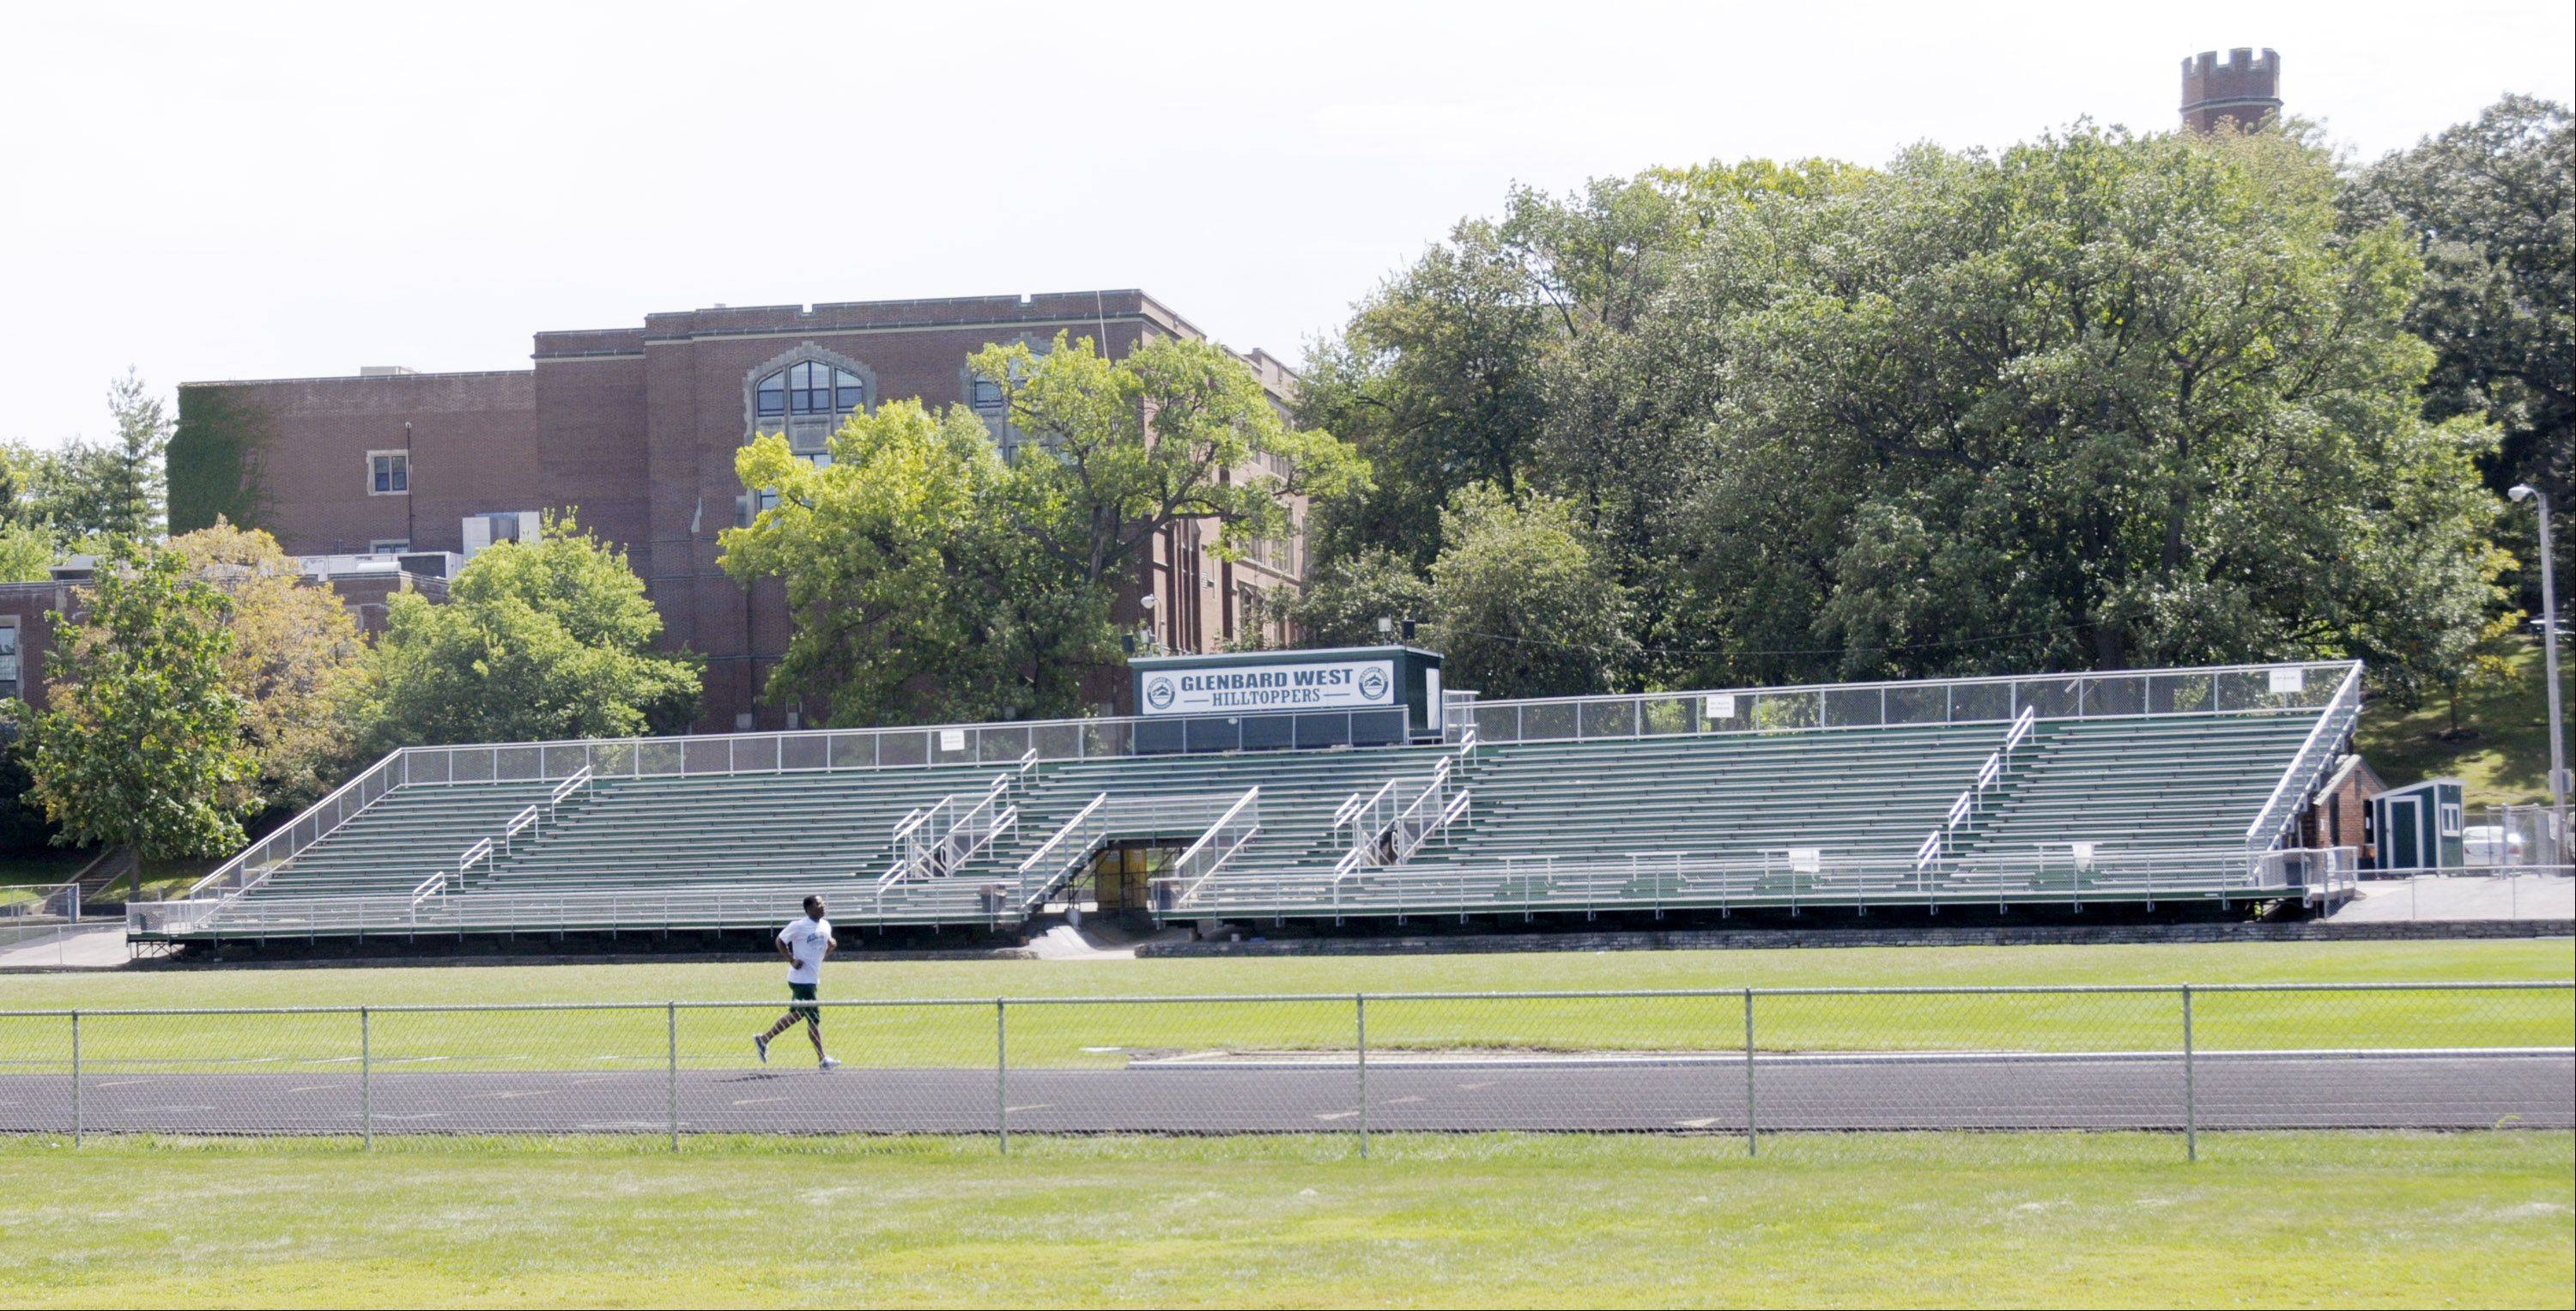 Replacement of the exterior running track at Duchon Field at Glenbard West High School is one of several proposed District 87 capital improvement projects announced this week.